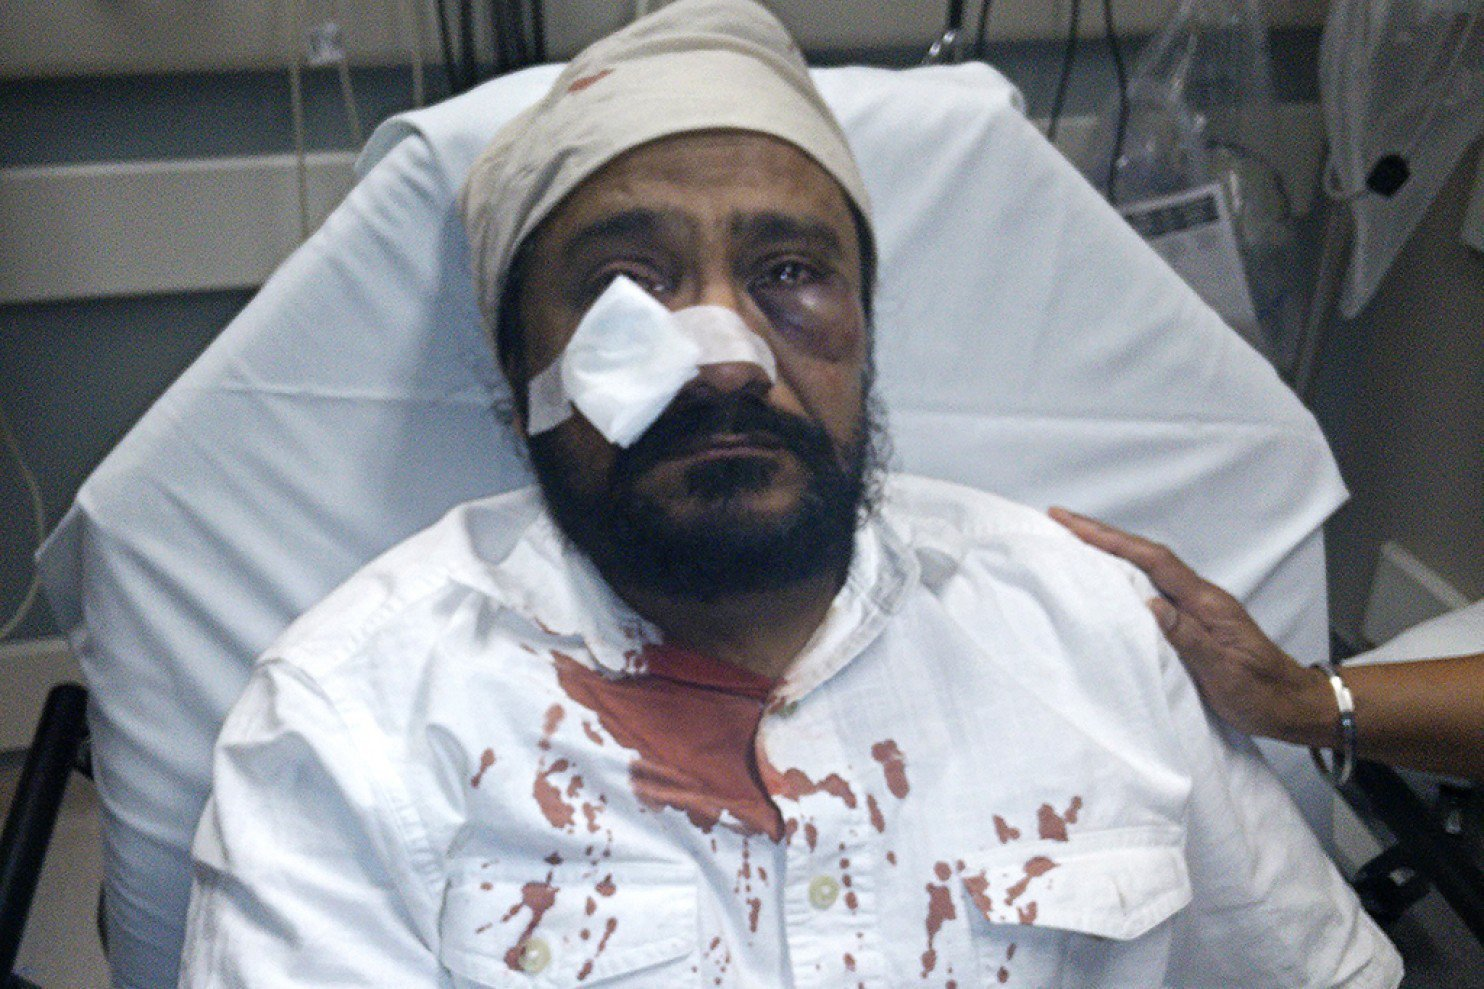 [Image: ct-police-investigate-after-sikh-man-cal...n-20150910]